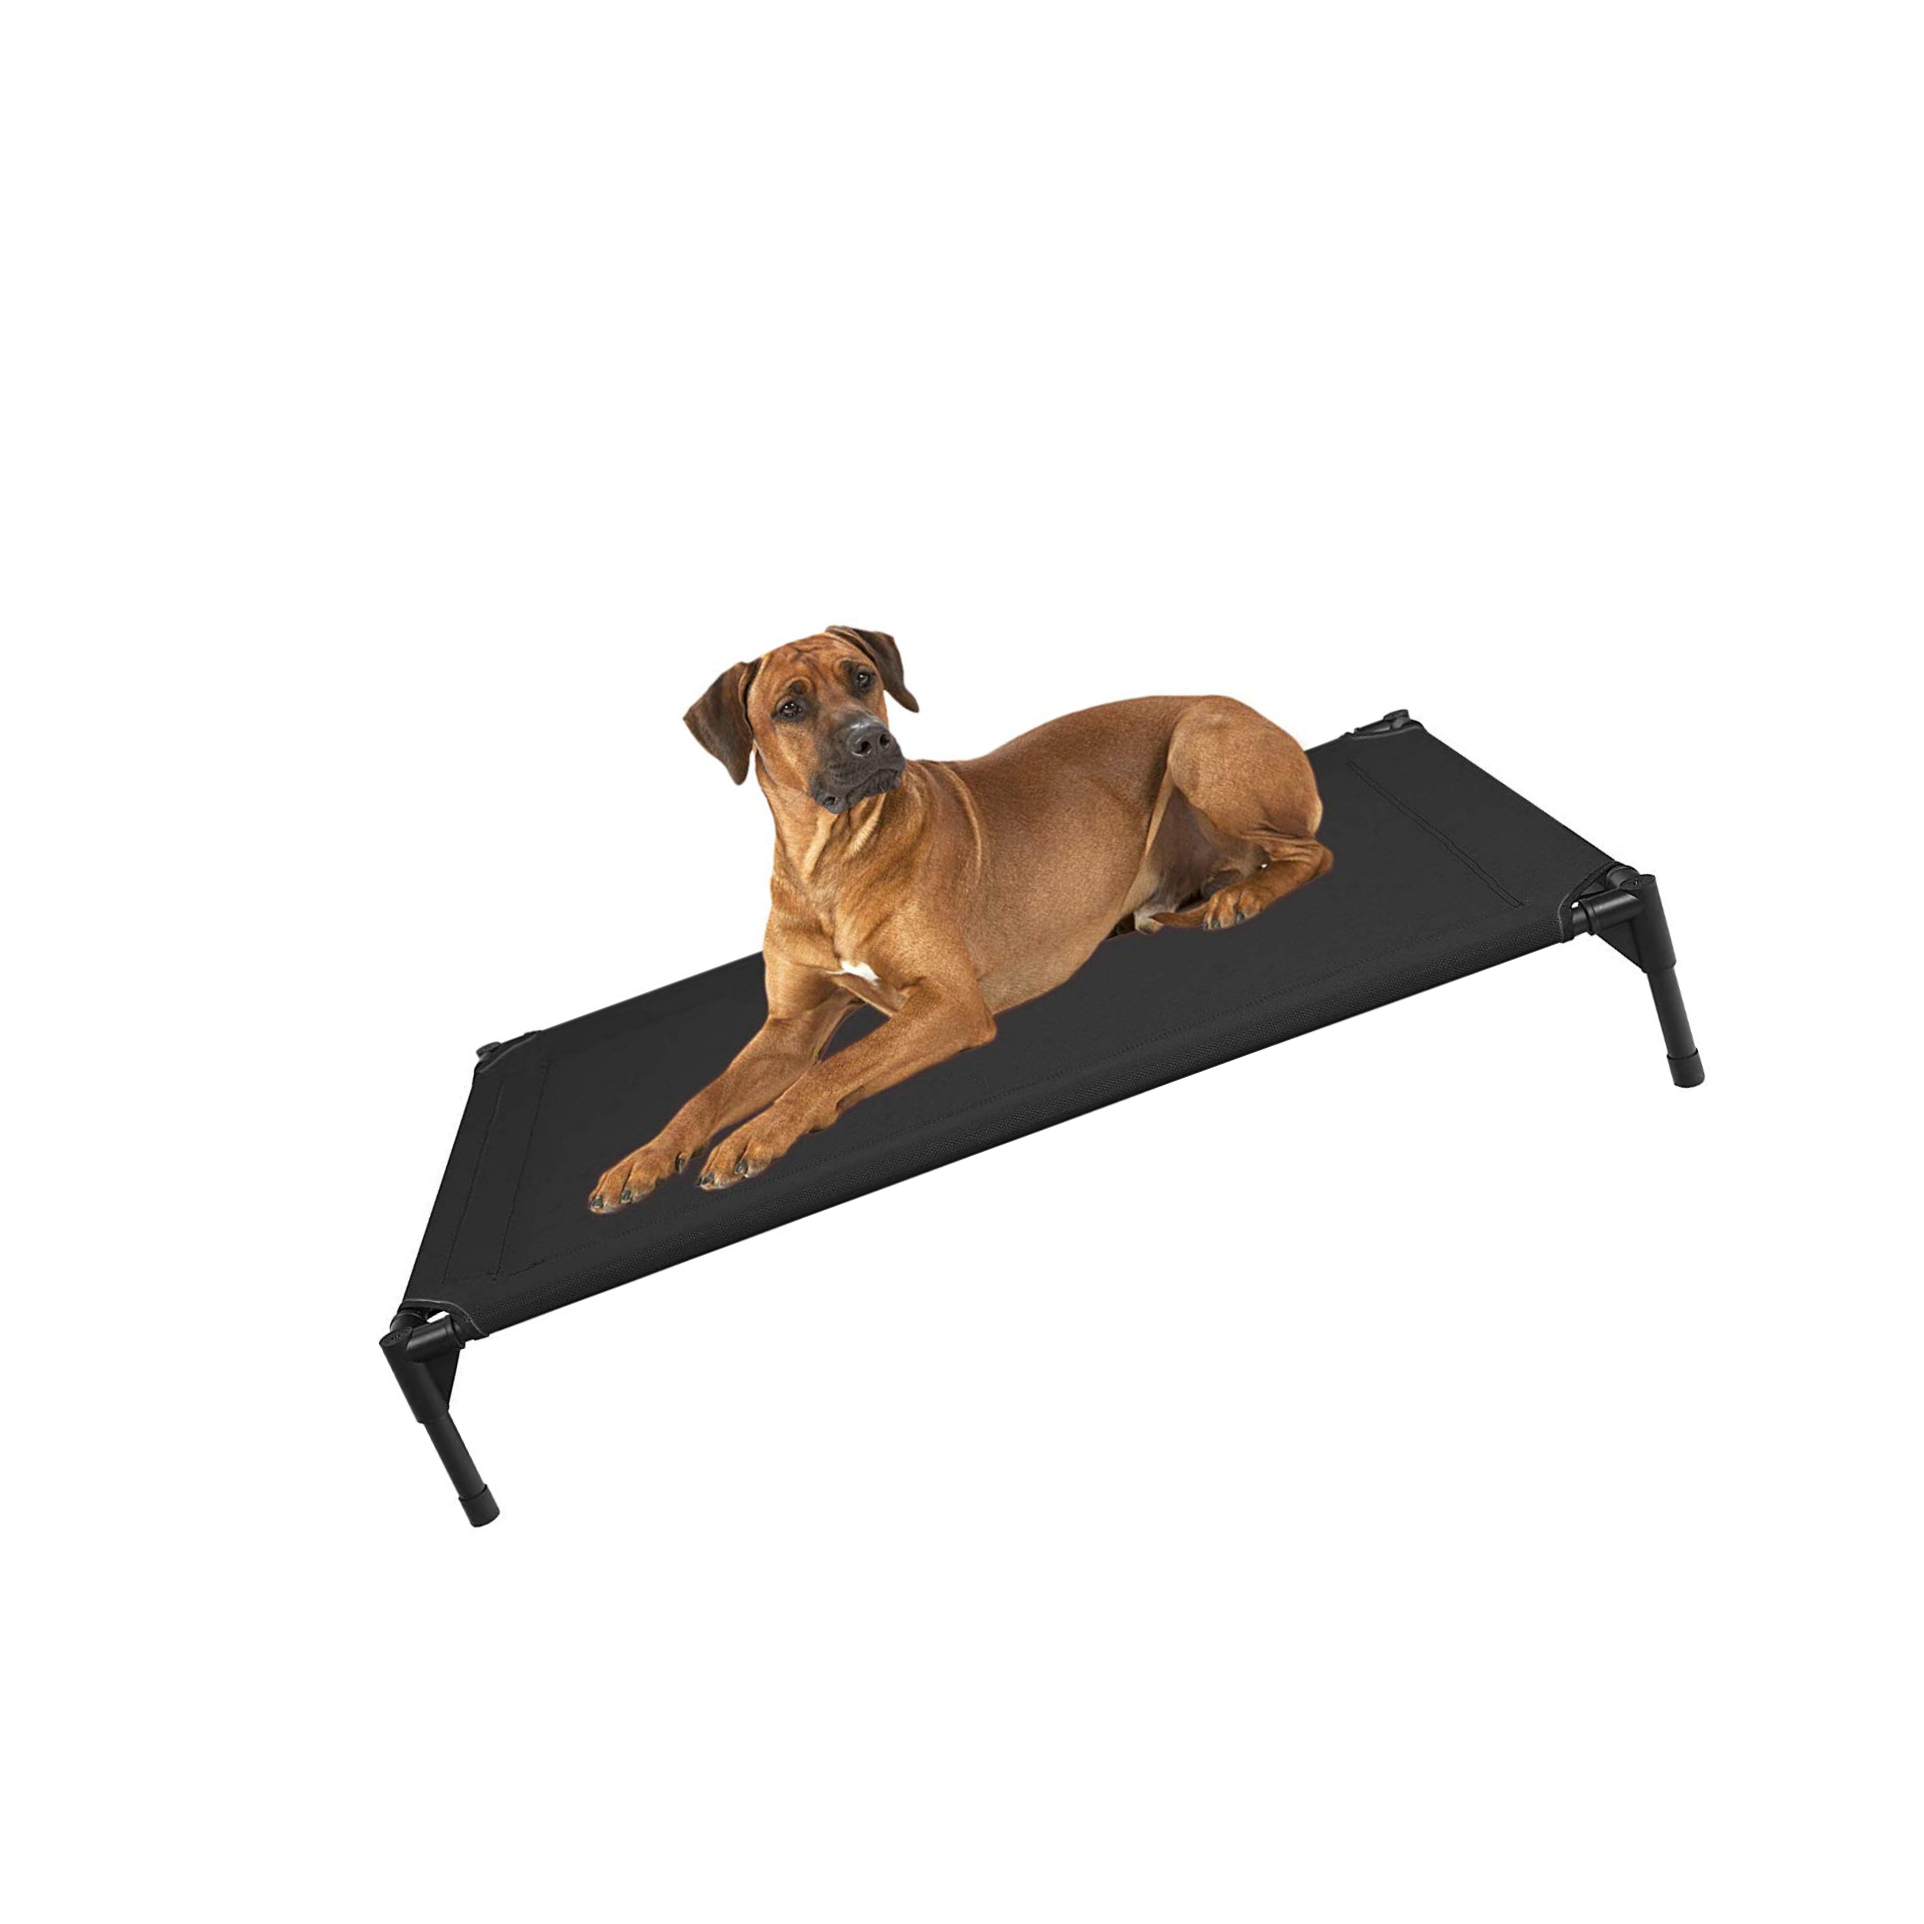 Washable /& Breathable Pet Cot Bed Mat 4 Sizes /& 7 Colors in Available Veehoo Cooling Elevated Dog Bed Replacement Cover